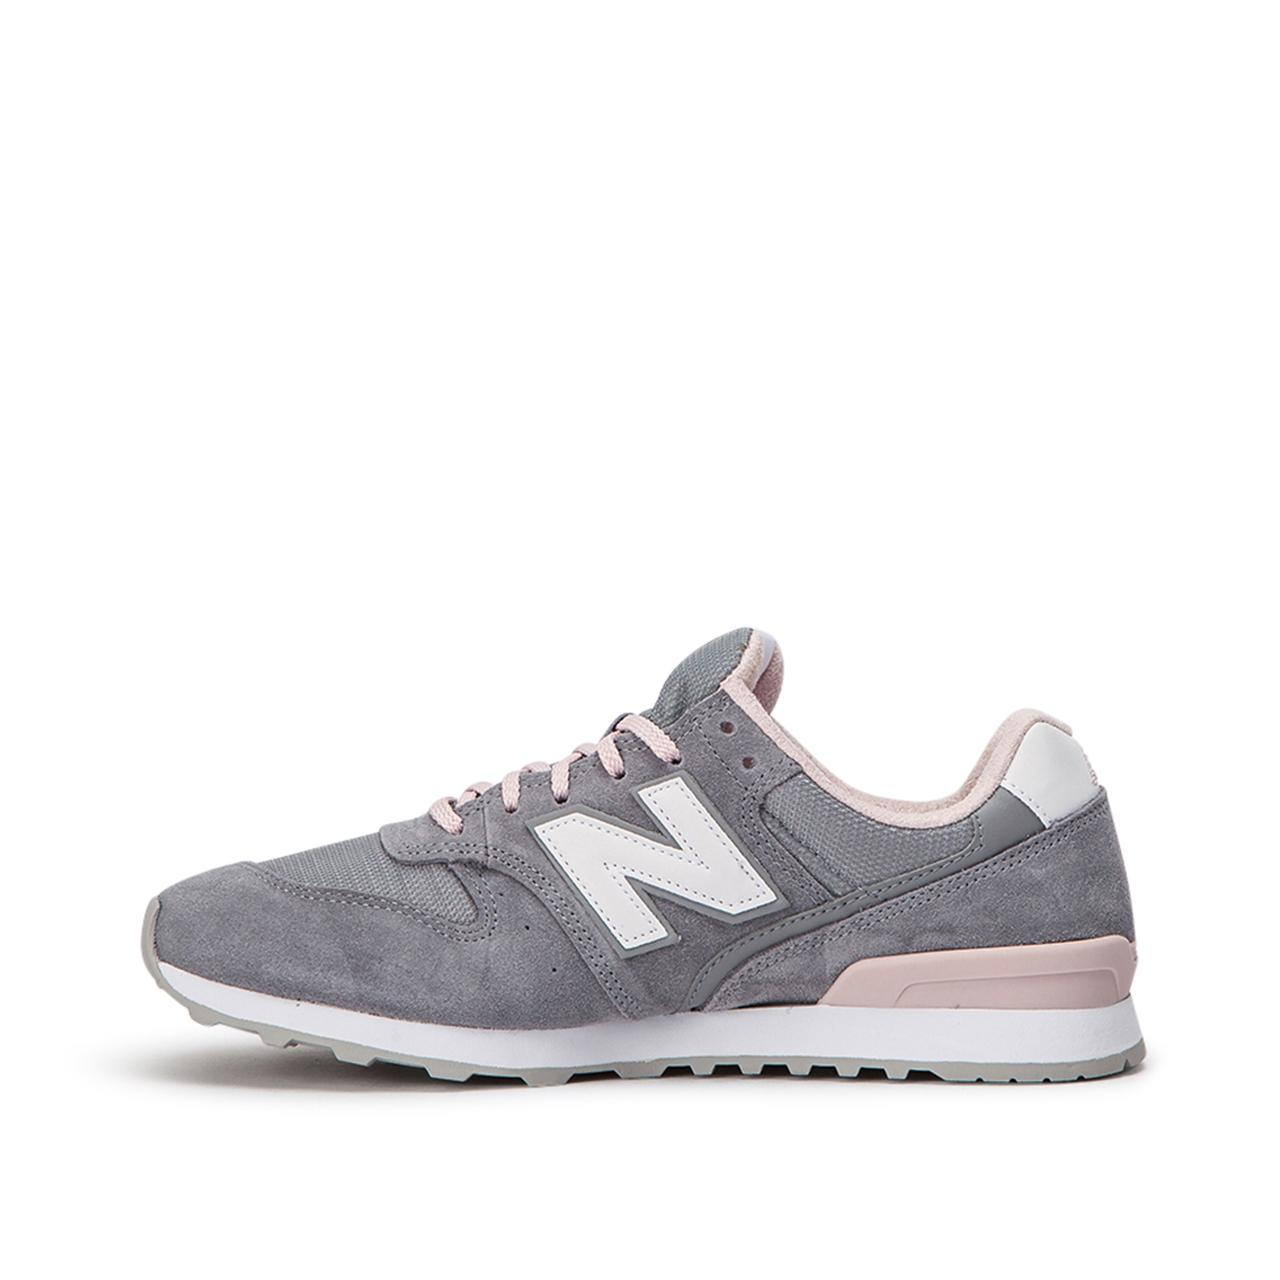 New Balance Leather Wr996 Acg in Grey